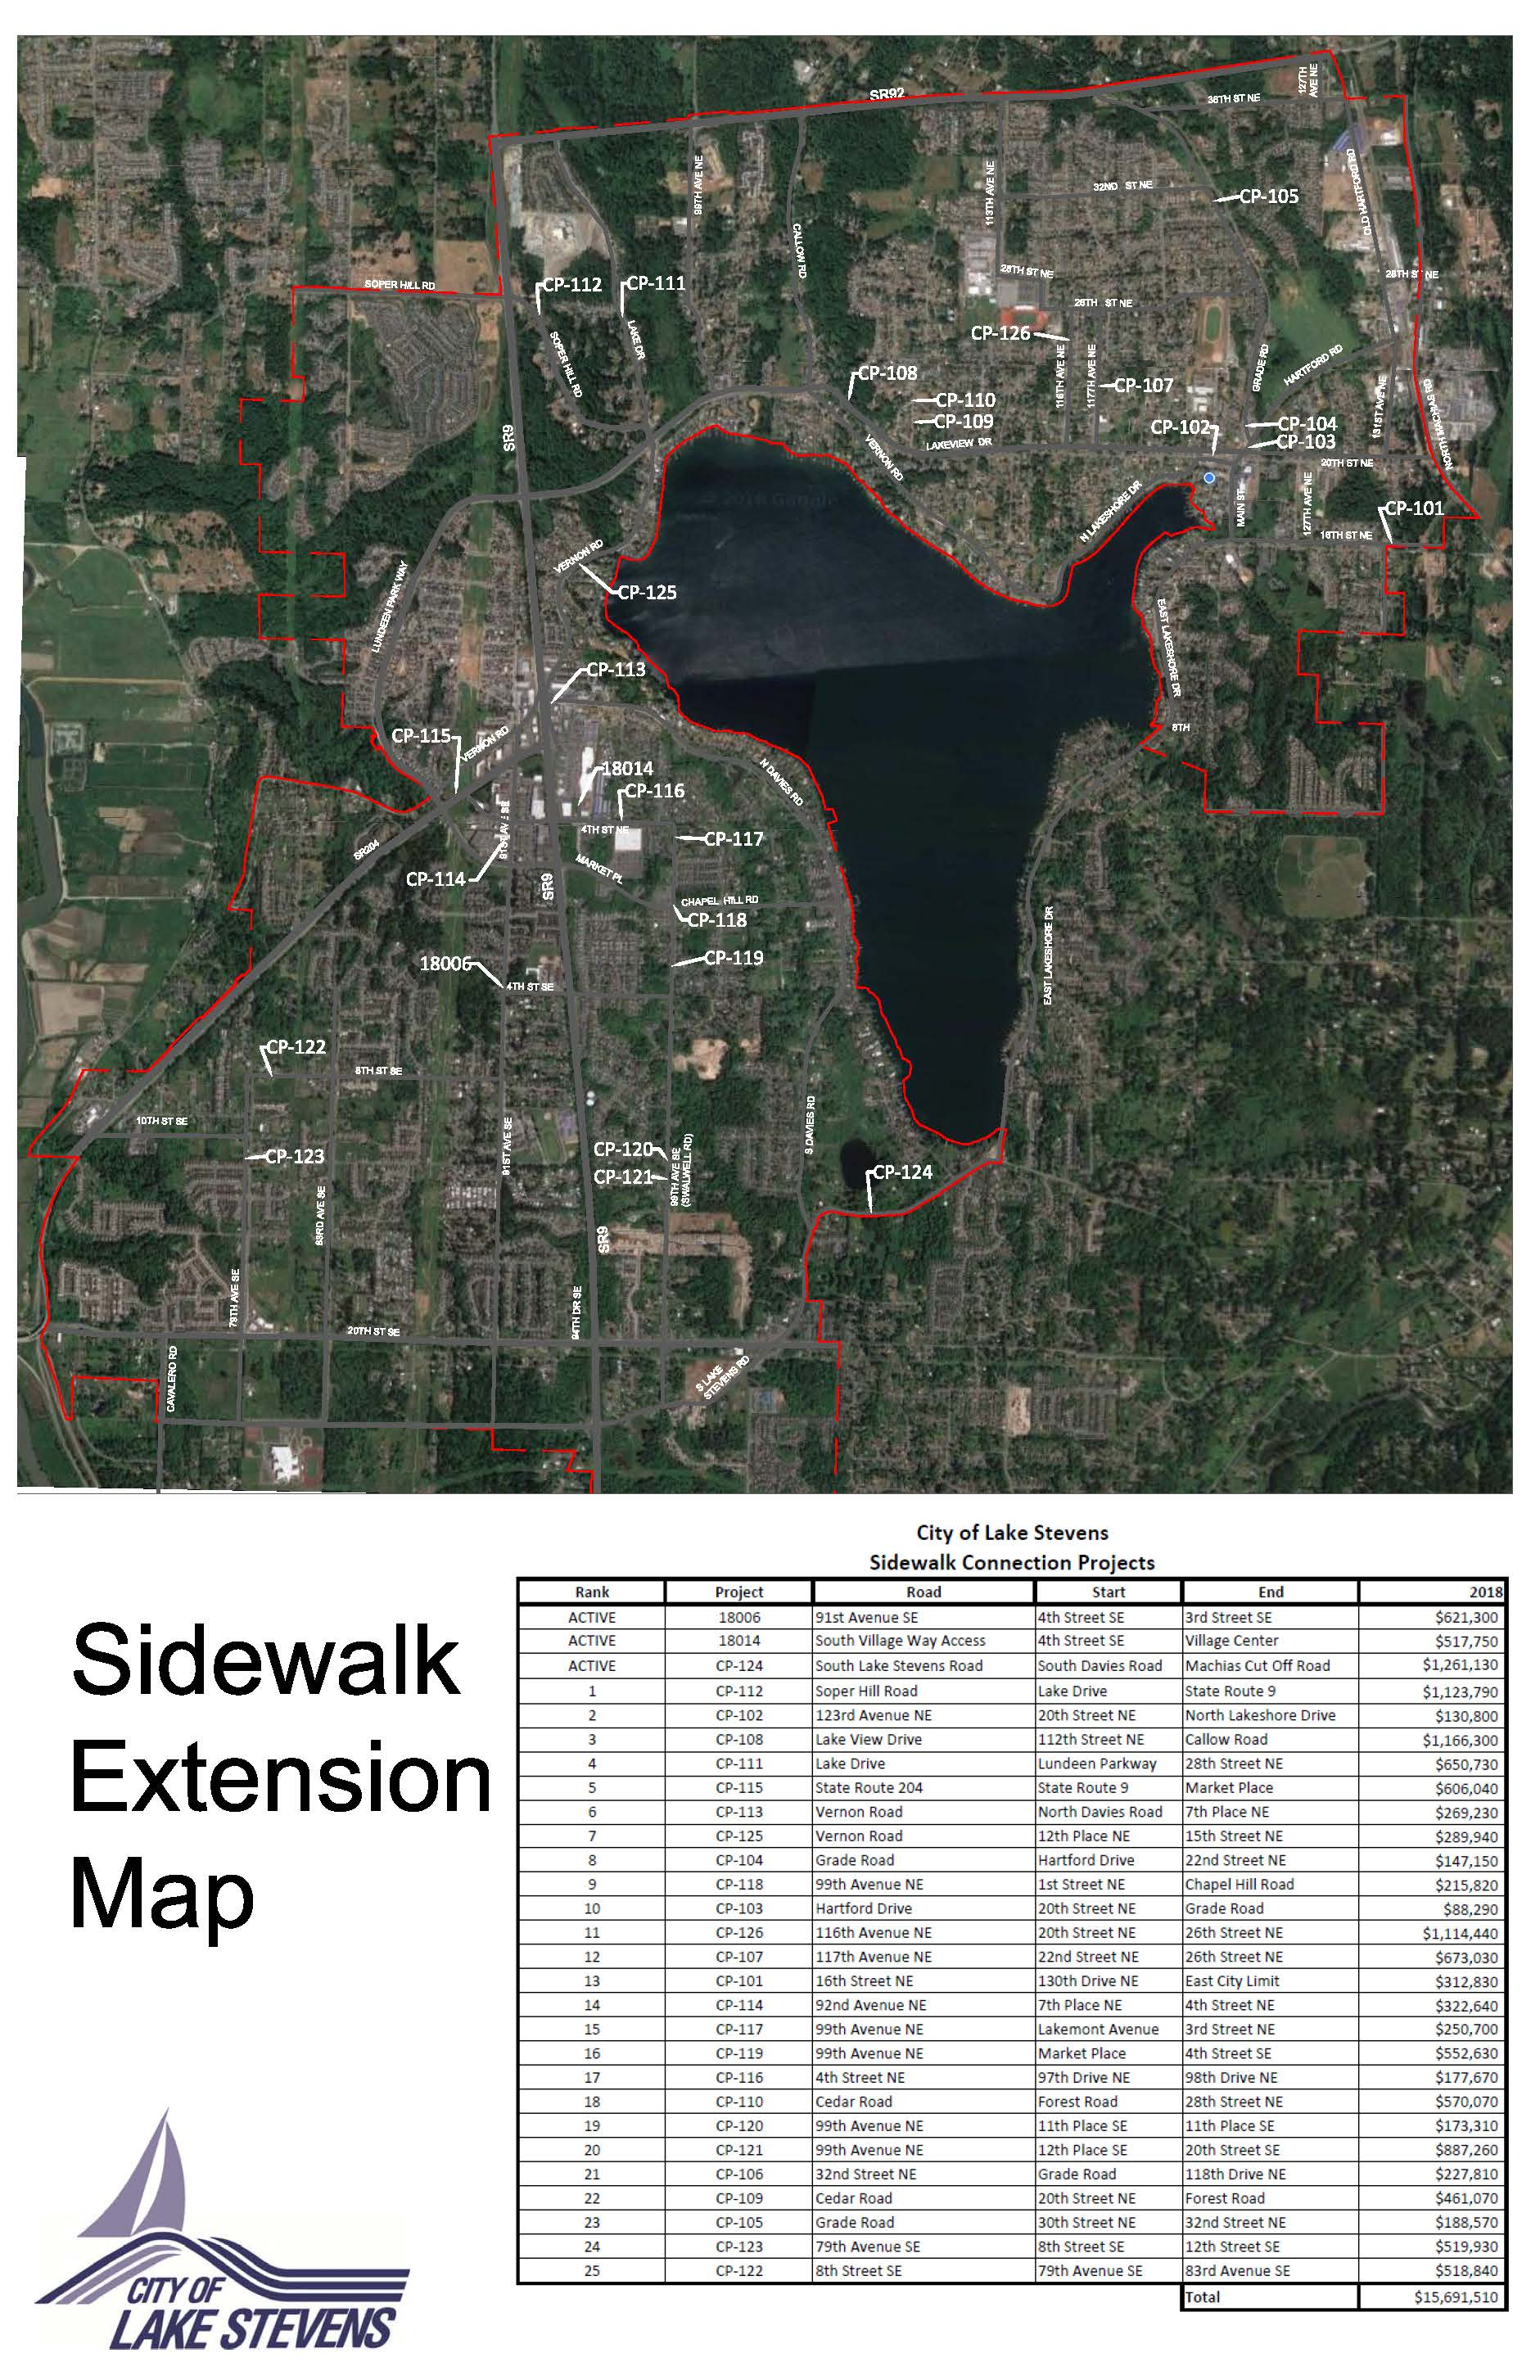 Sidewalk Extension Map - Final